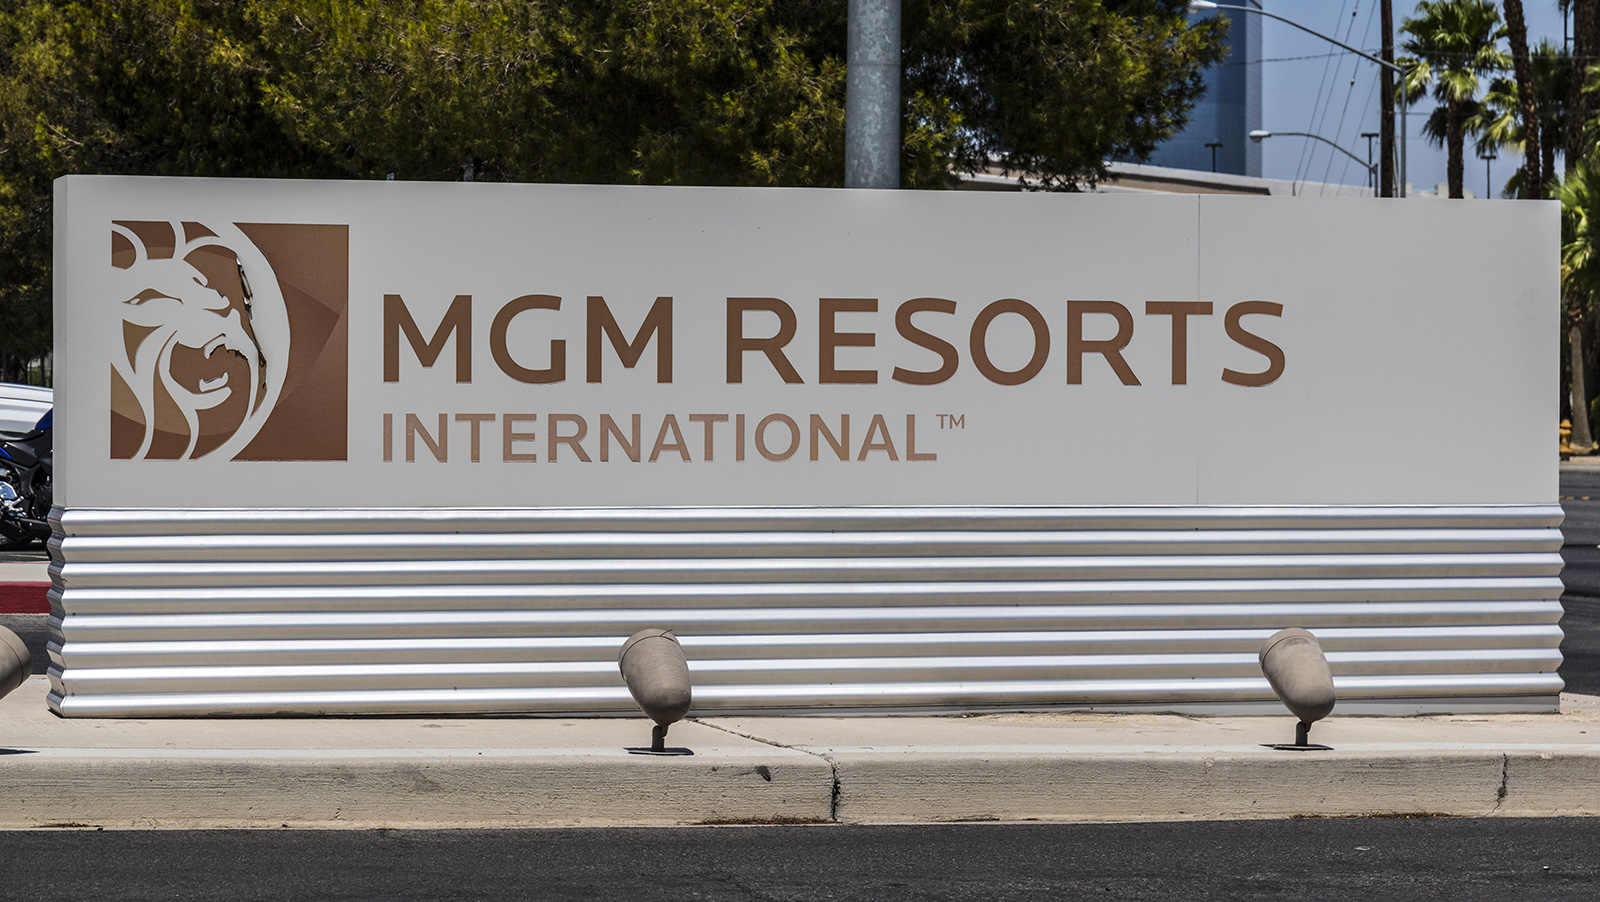 MGM diversifies as it purchases into boutique hotel chain